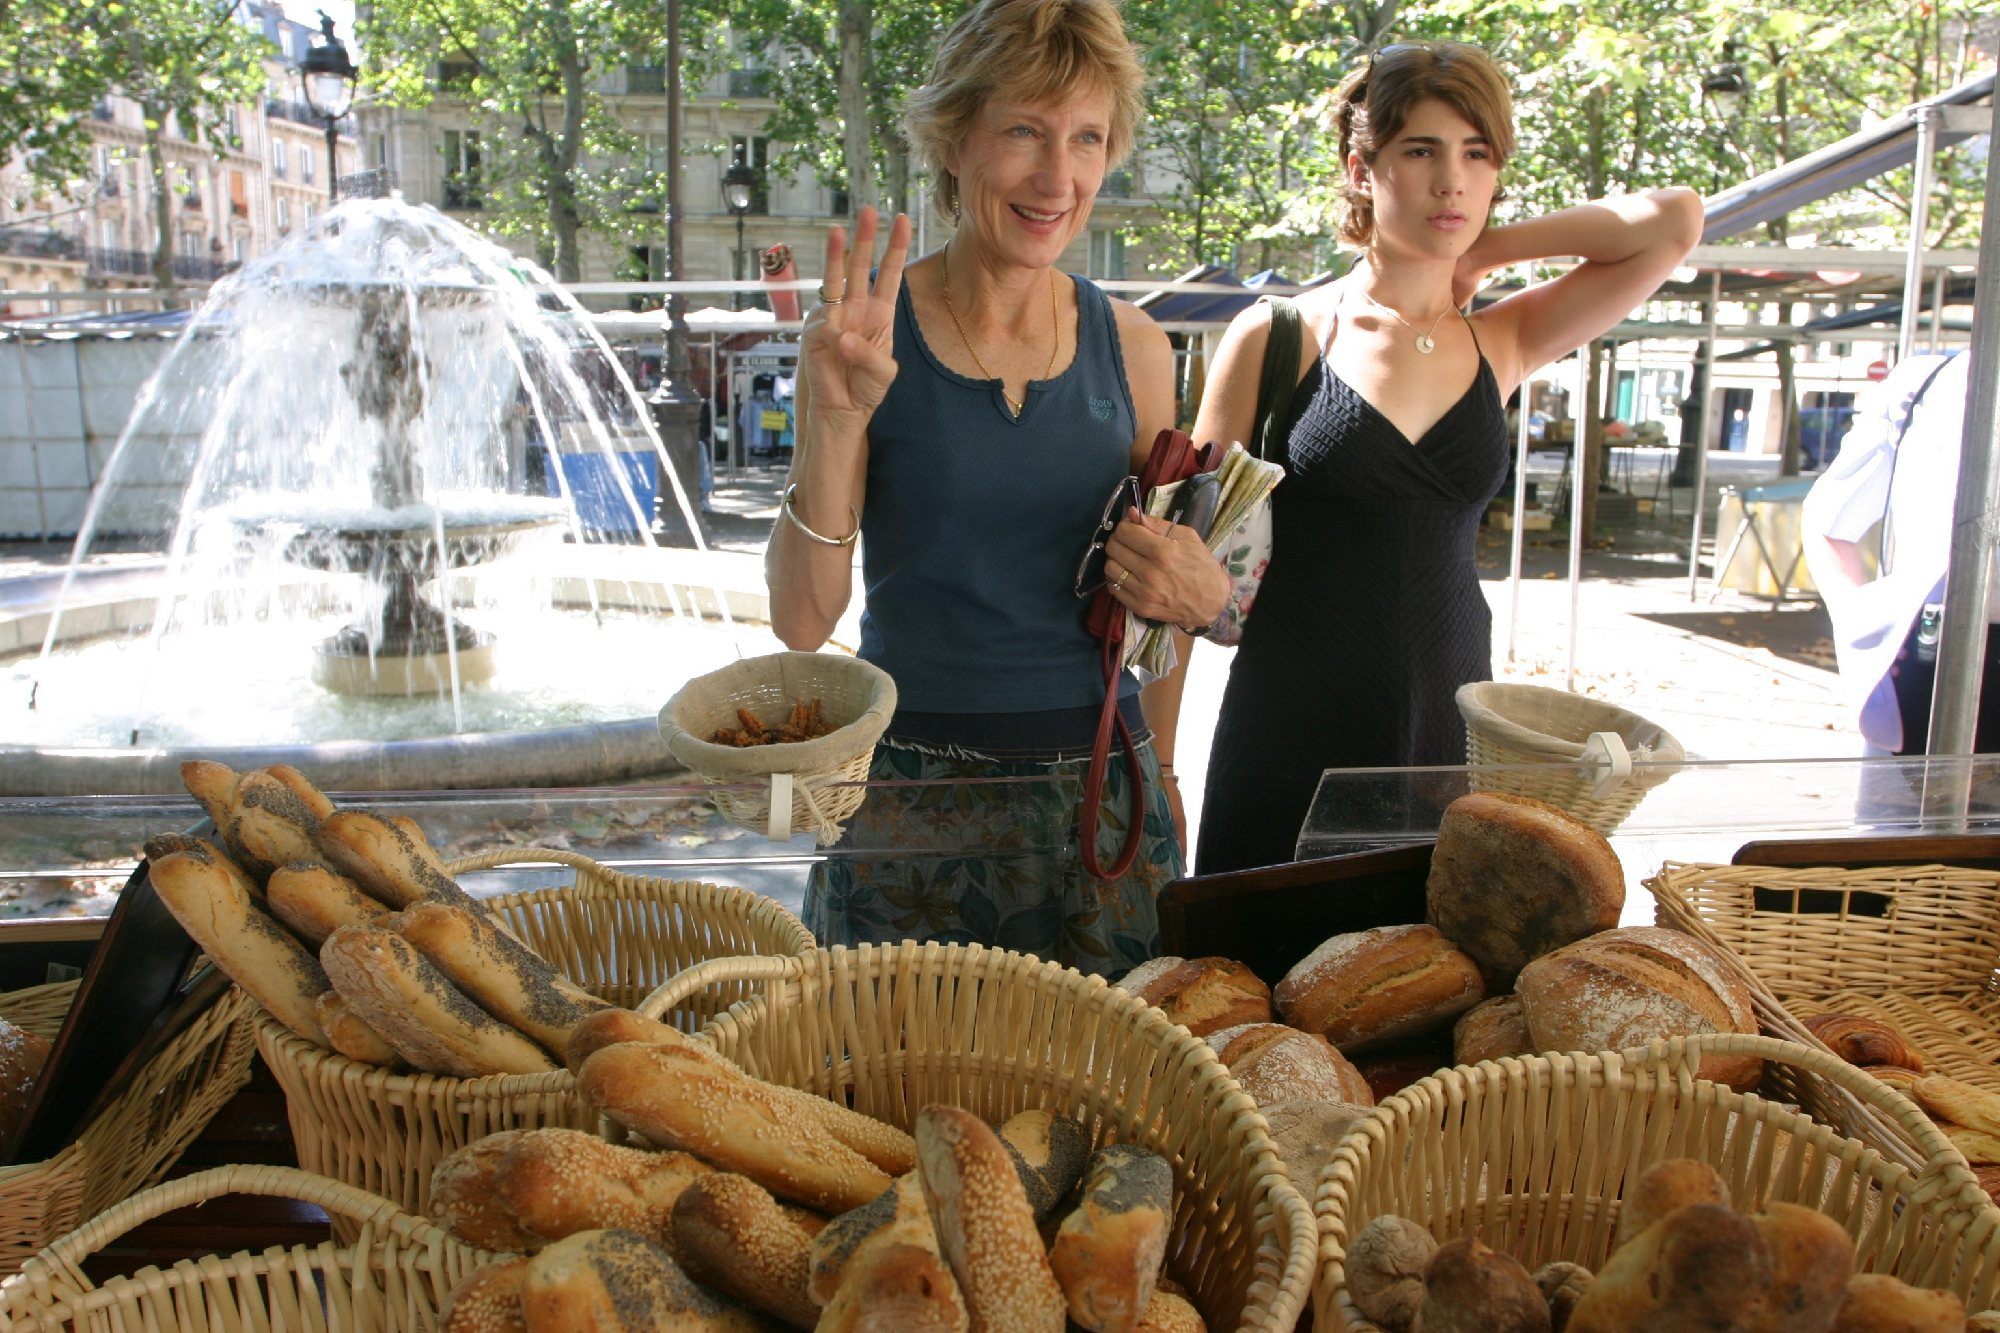 Ditch Monoprix and head for Marché Beauvau